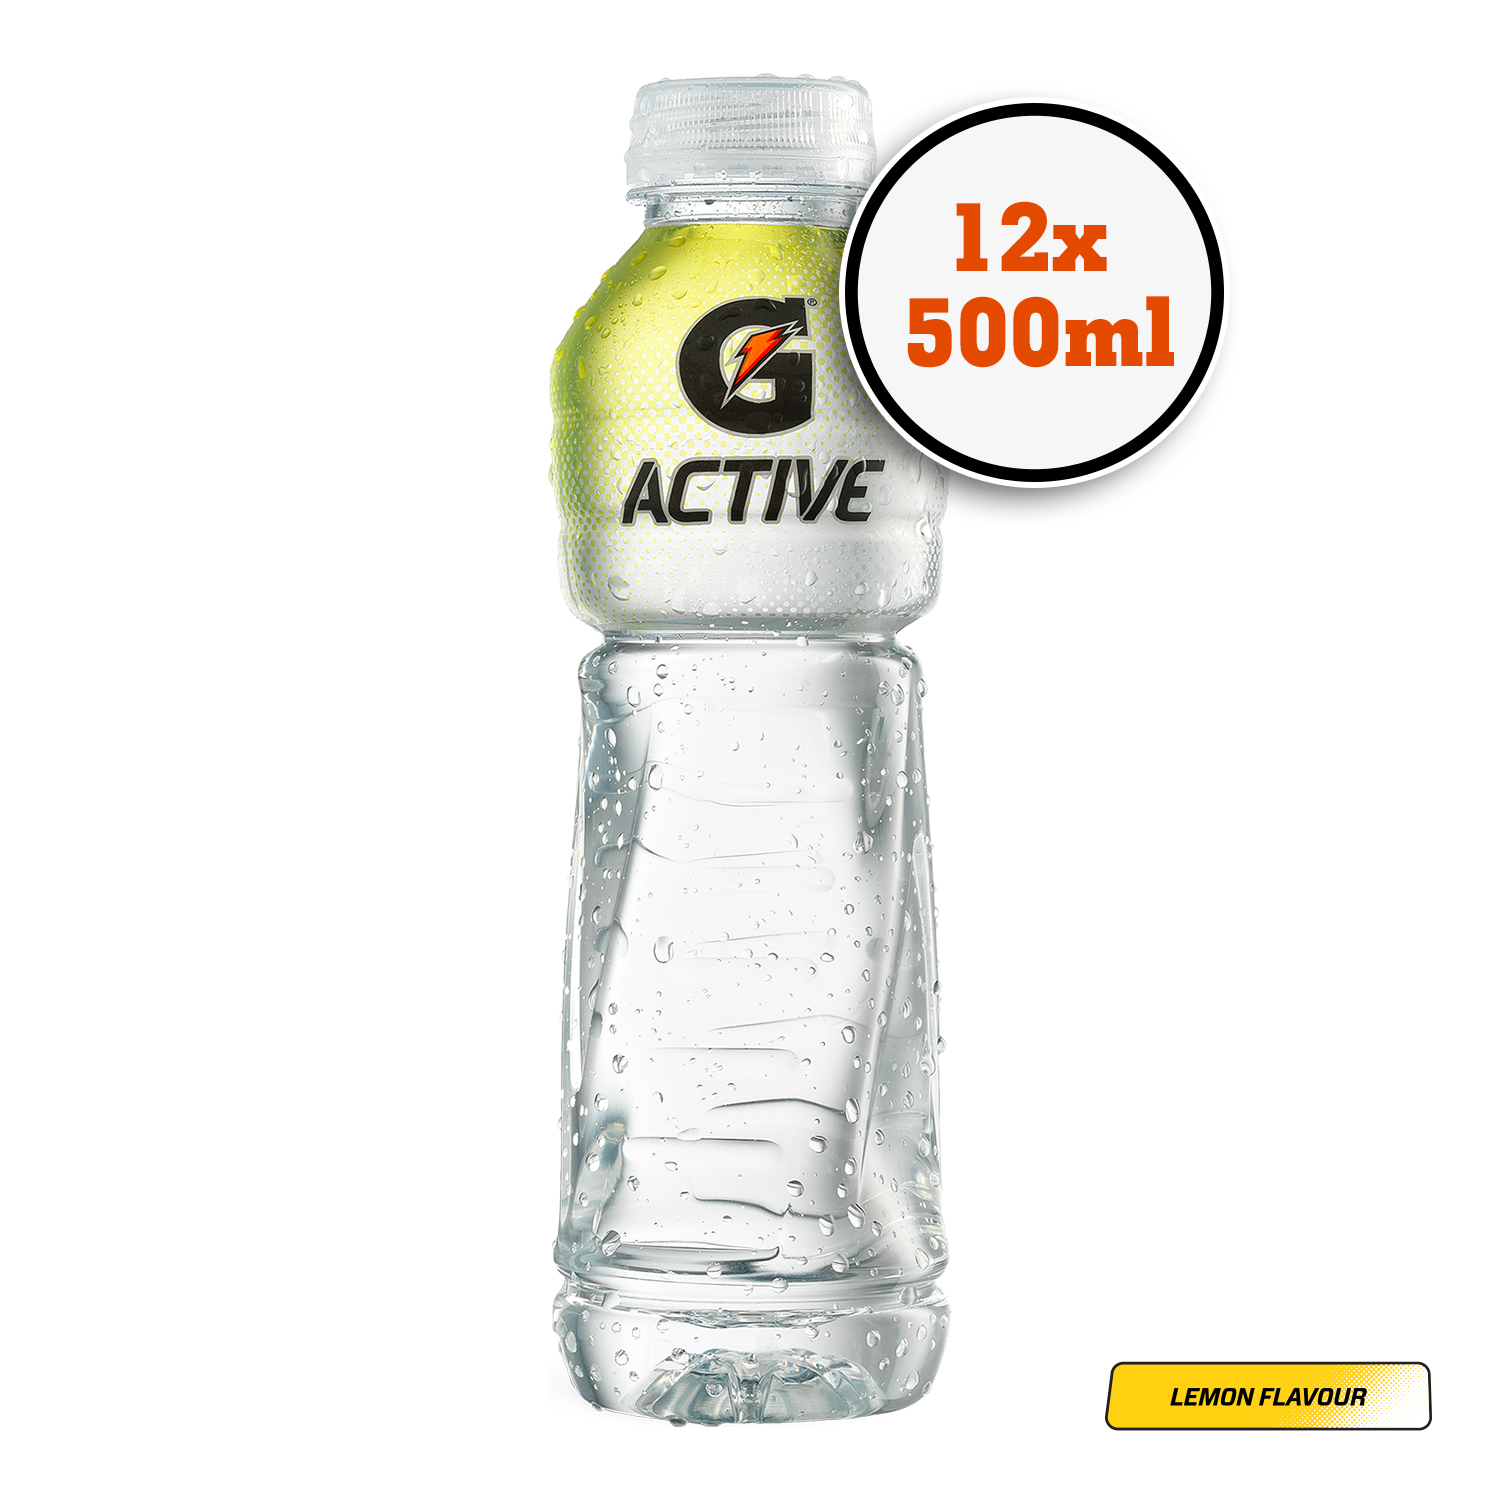 5ecc7cbdd9030 Details about Gatorade G Active Lemon Sports Drink with Electrolytes Pack  of 12 500ml